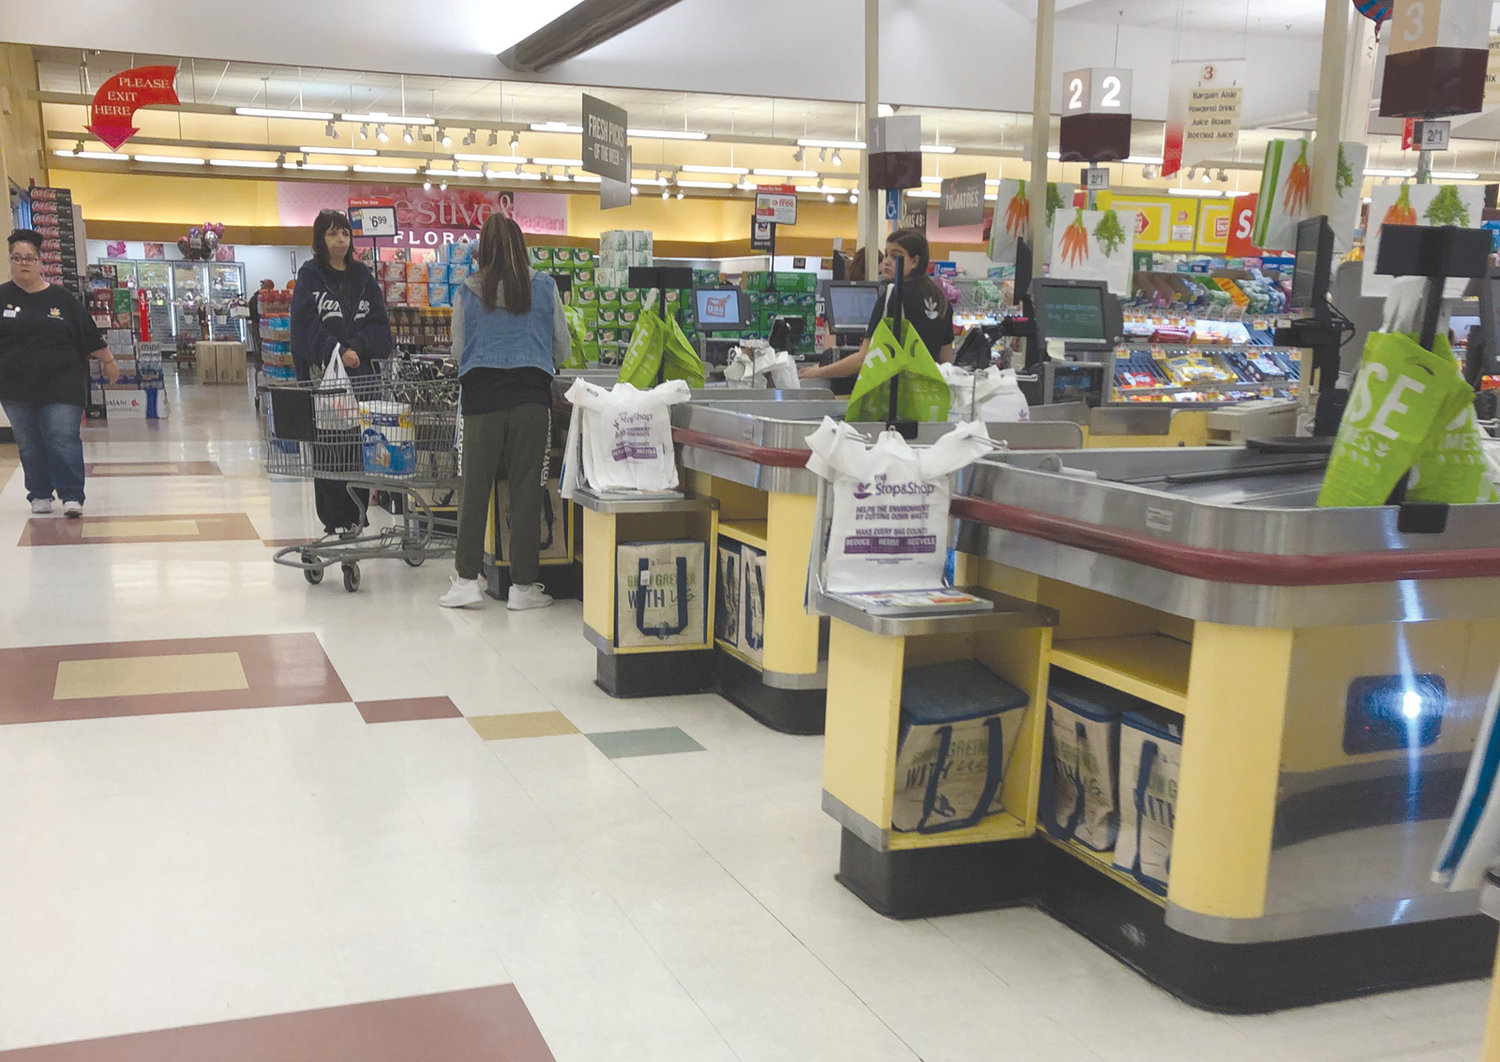 HERE TO STAY: Customers load their plastic bags into a cart at the Stop & Shop on Atwood Avenue in Johnston on Tuesday. Mayor Joseph Polisena said the town does not have an appetite to ban such single-use plastic bags as other towns and cities have around the state.